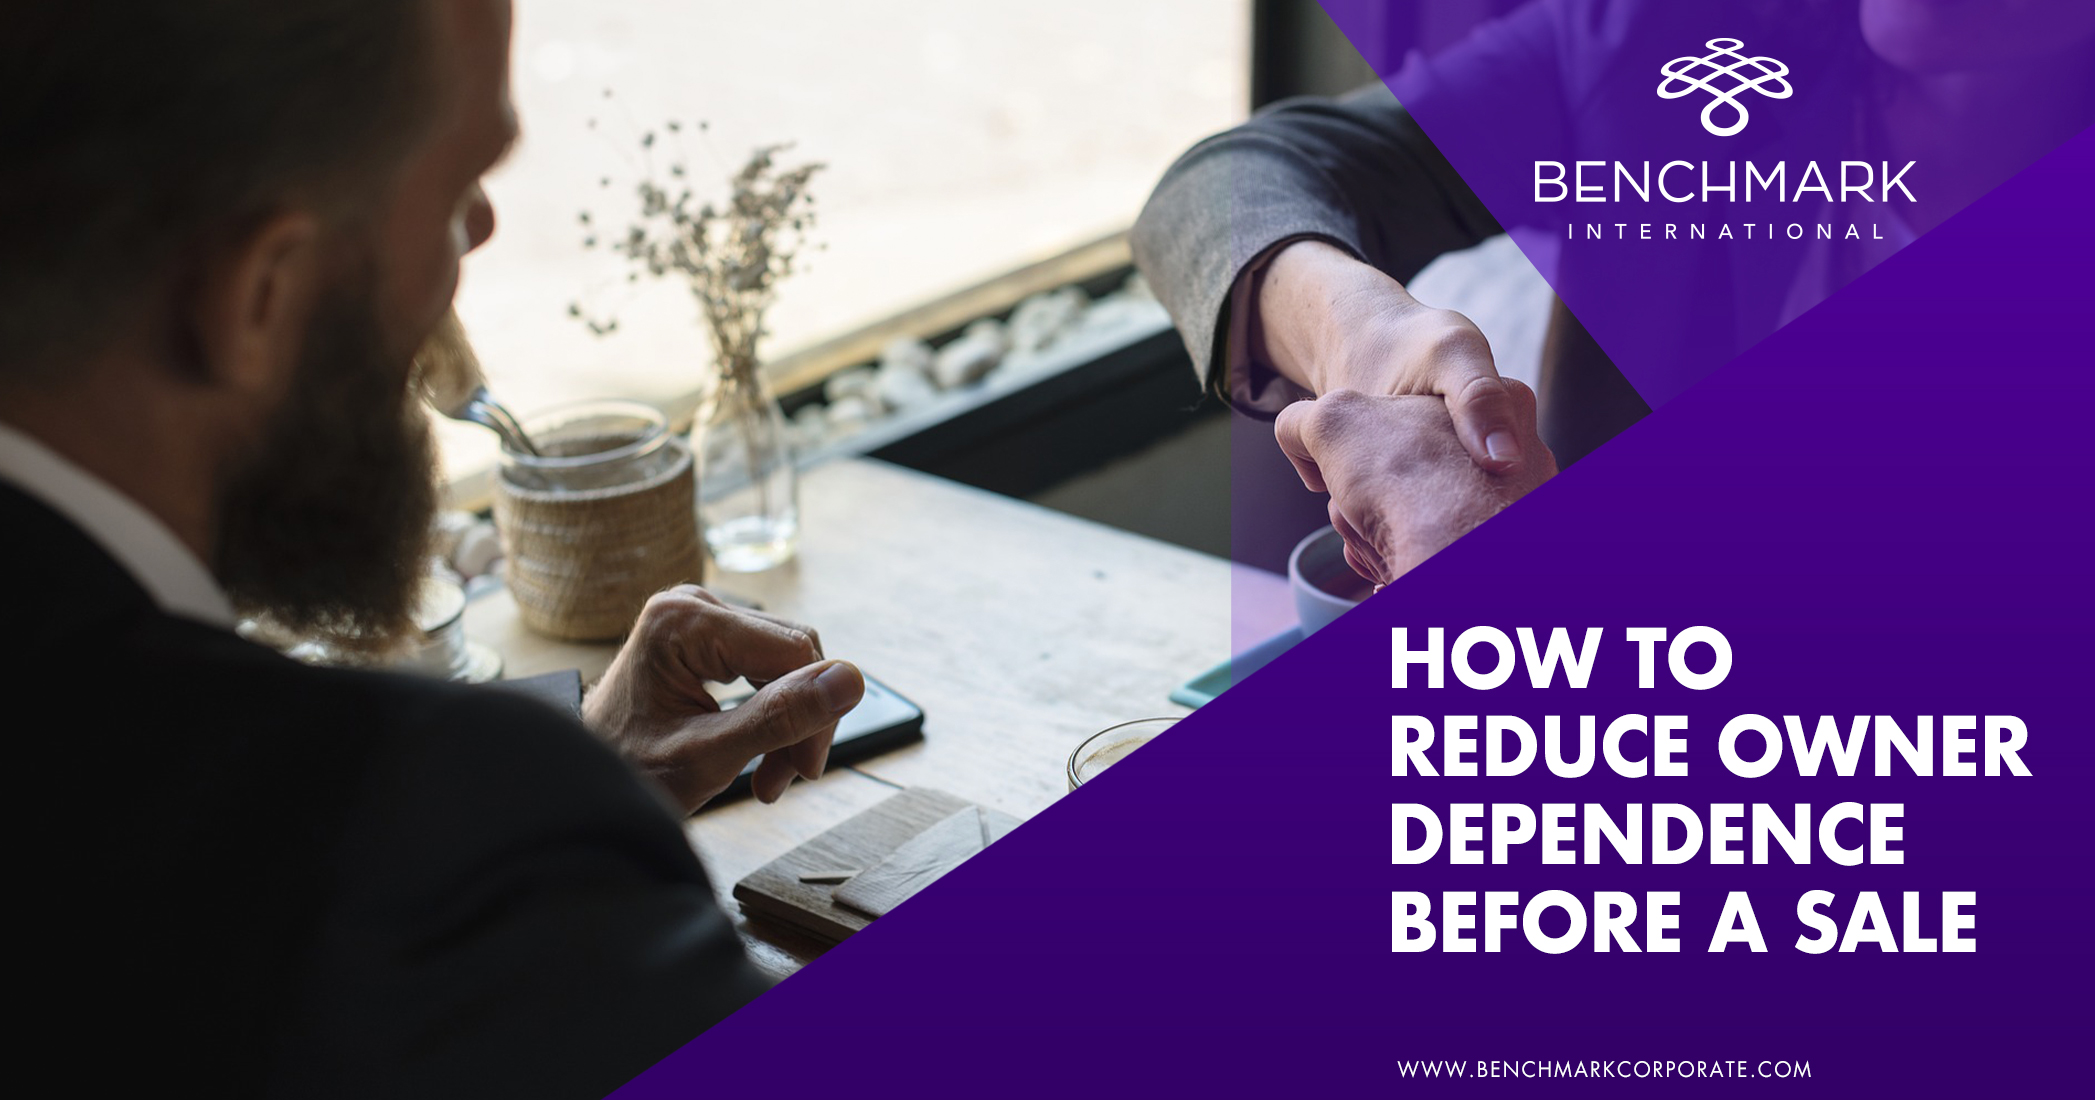 How To Reduce Owner Dependence Before A Sale